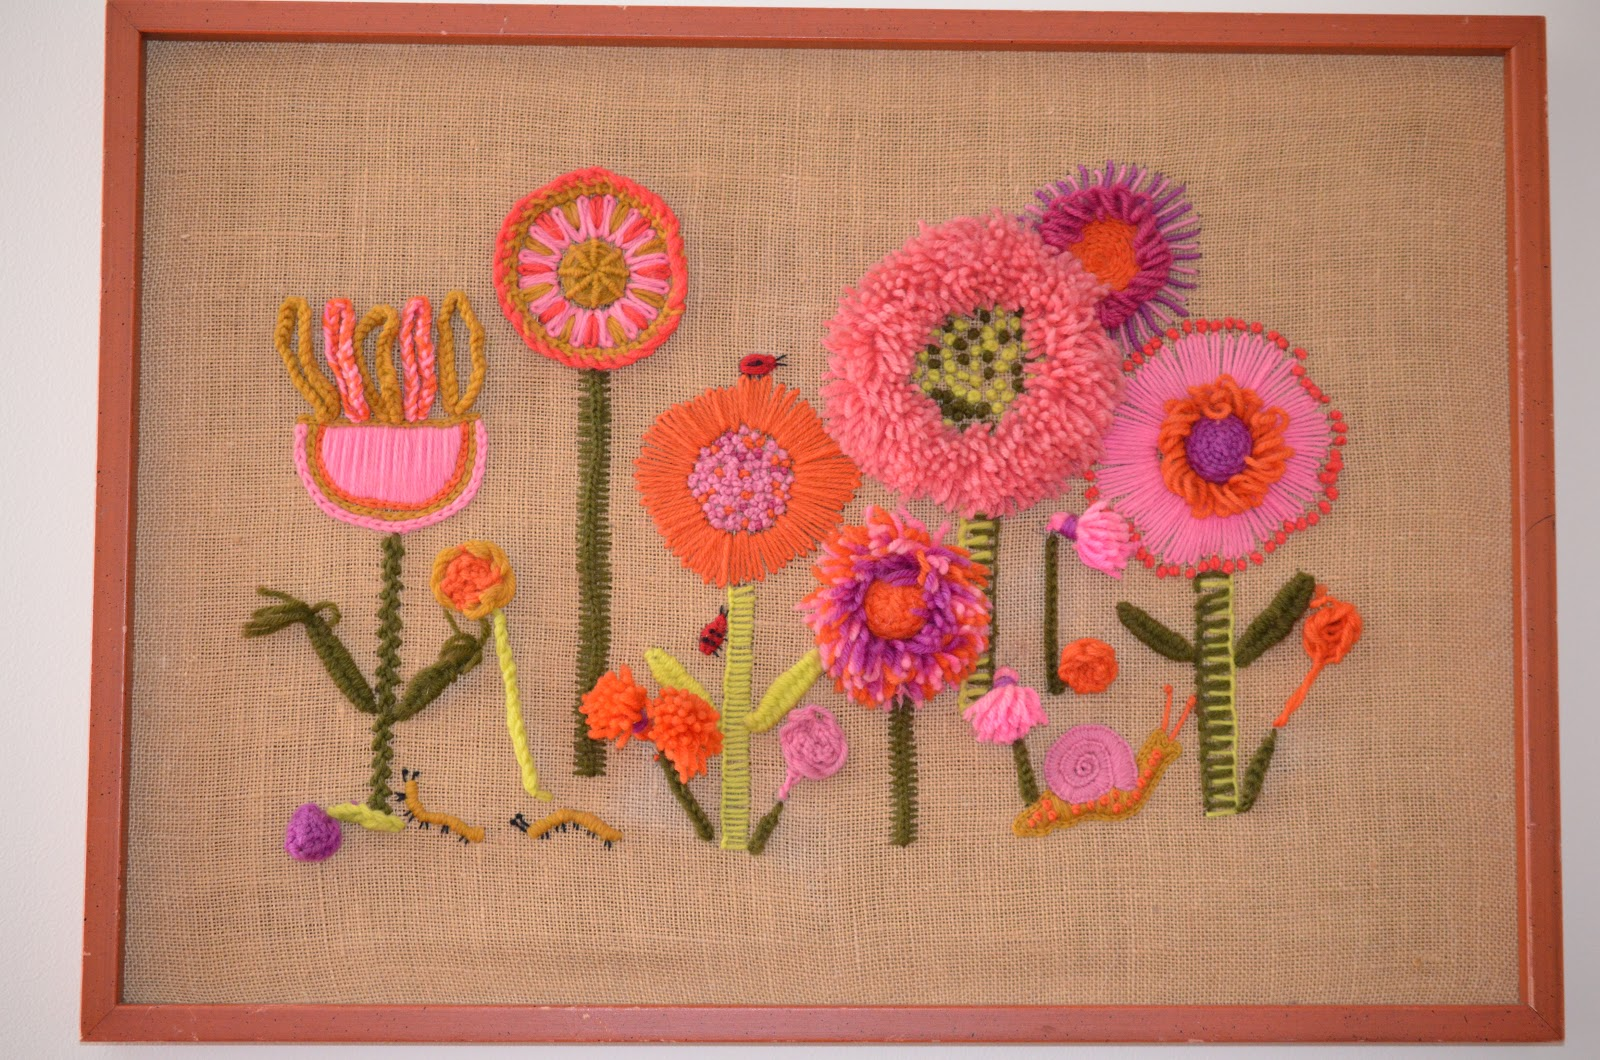 Of Course, Something That I Love In Home Decor Yarn Pieces Stitched On  Burlap With